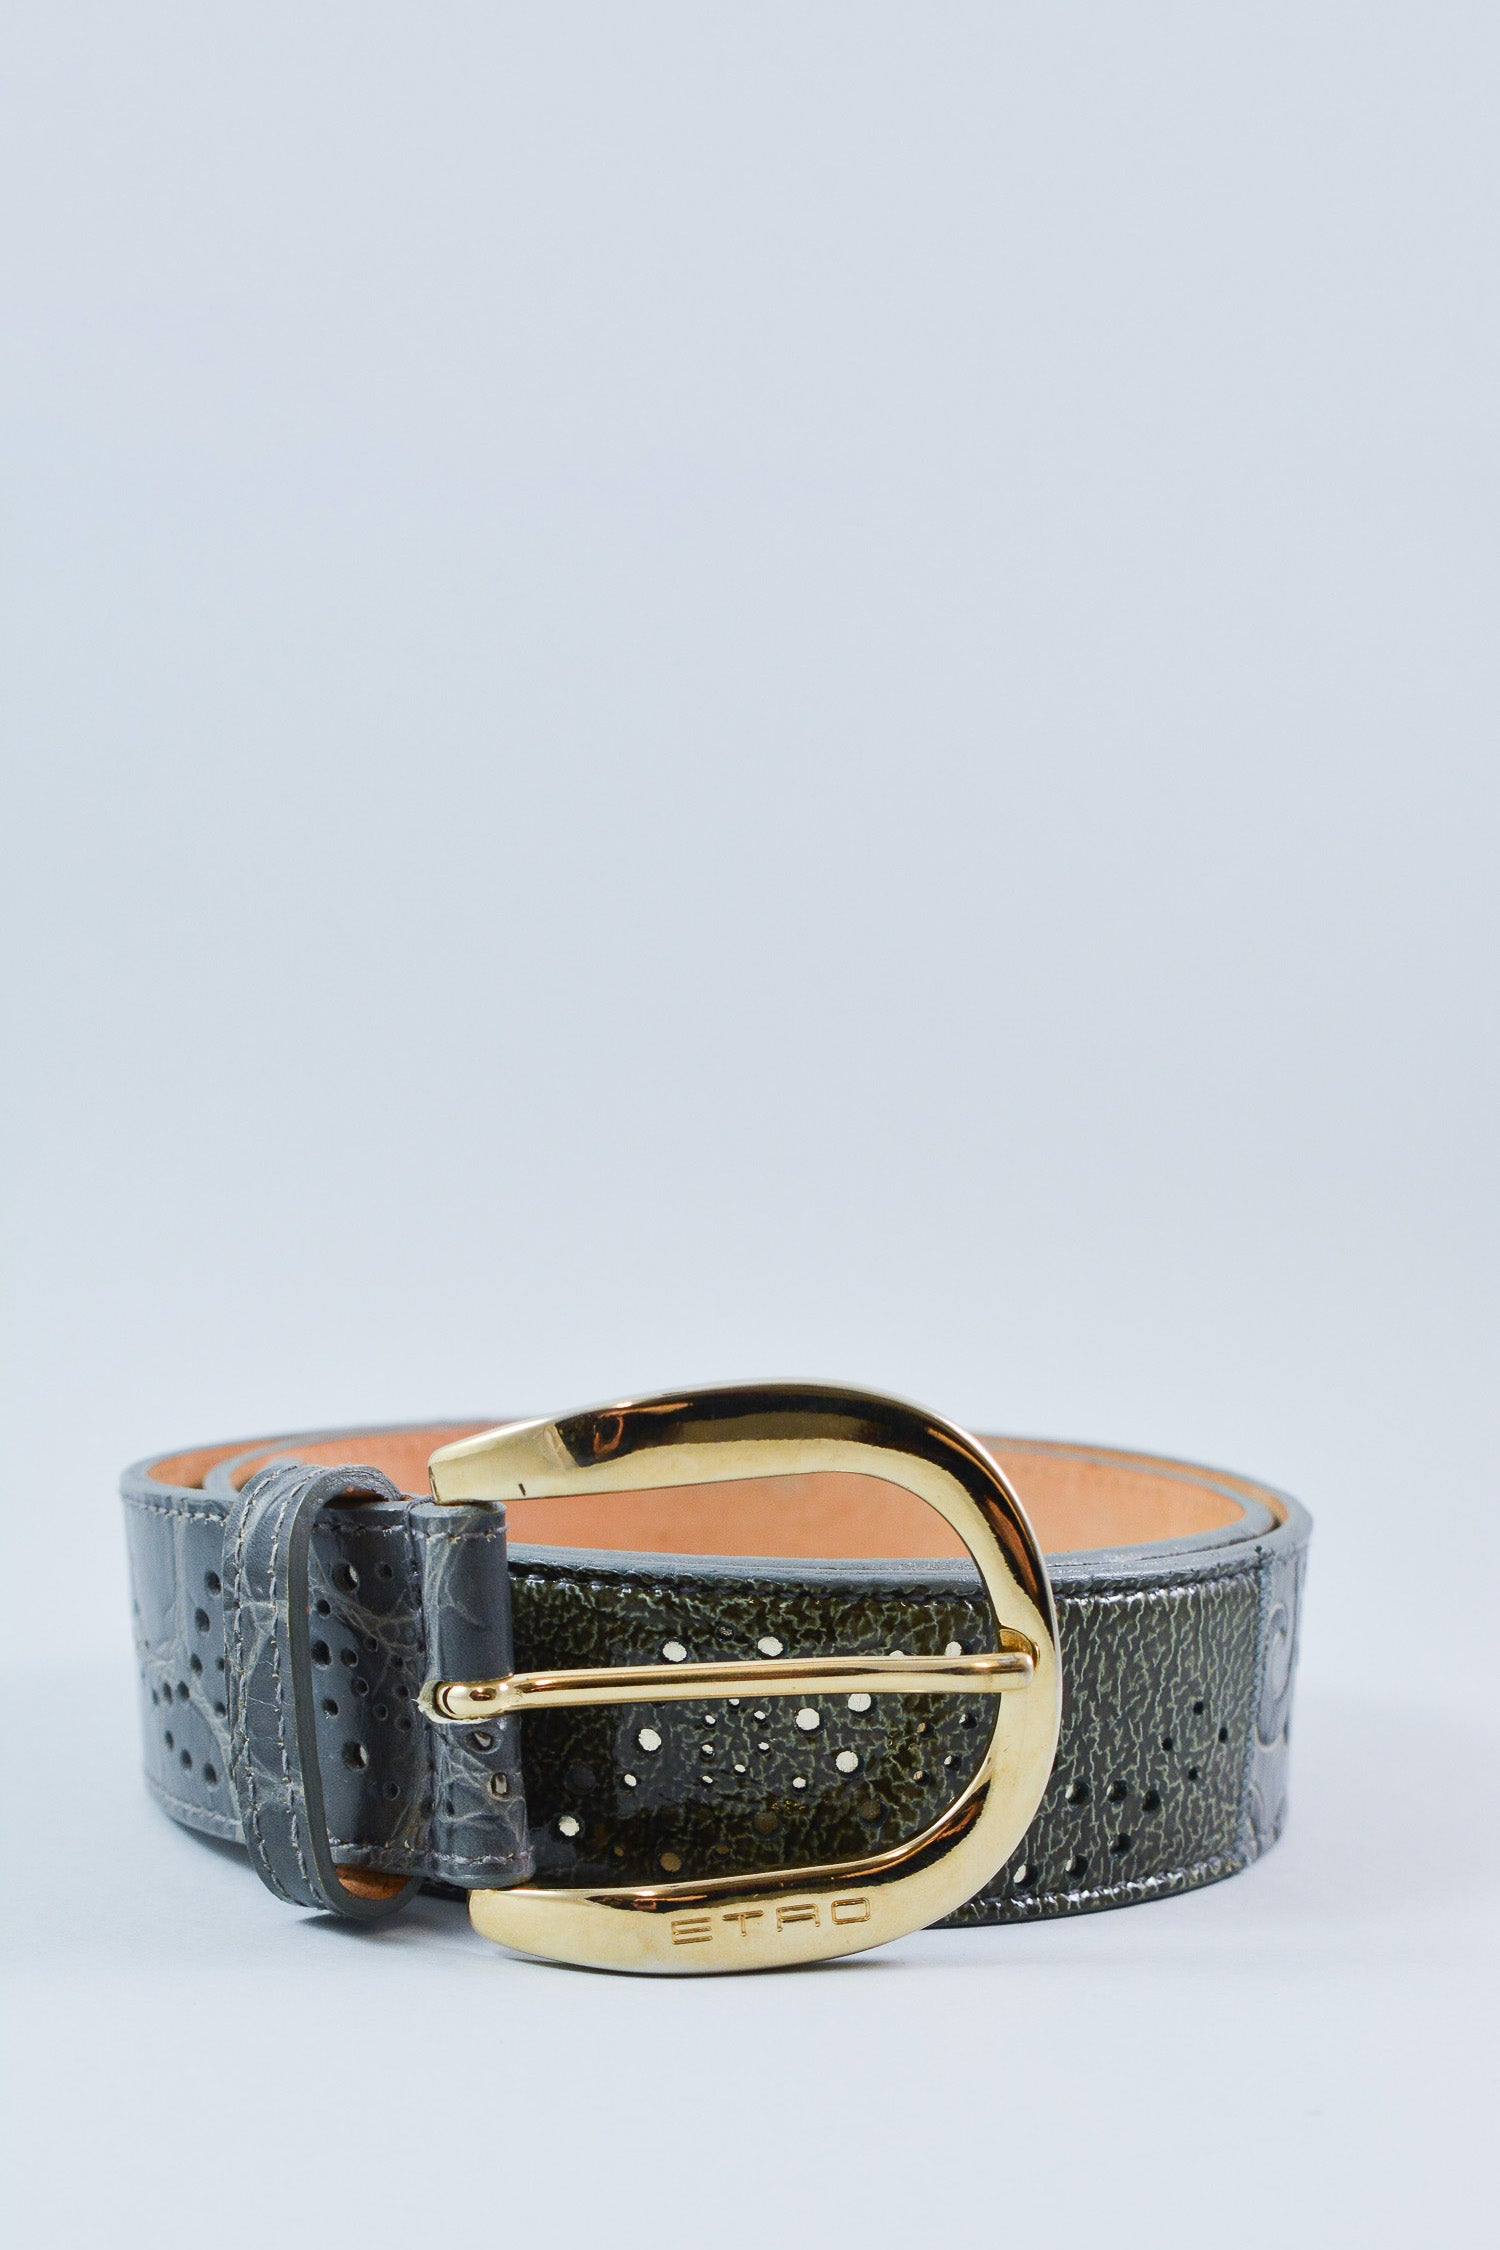 Etro Grey Embossed Belt Size 34""